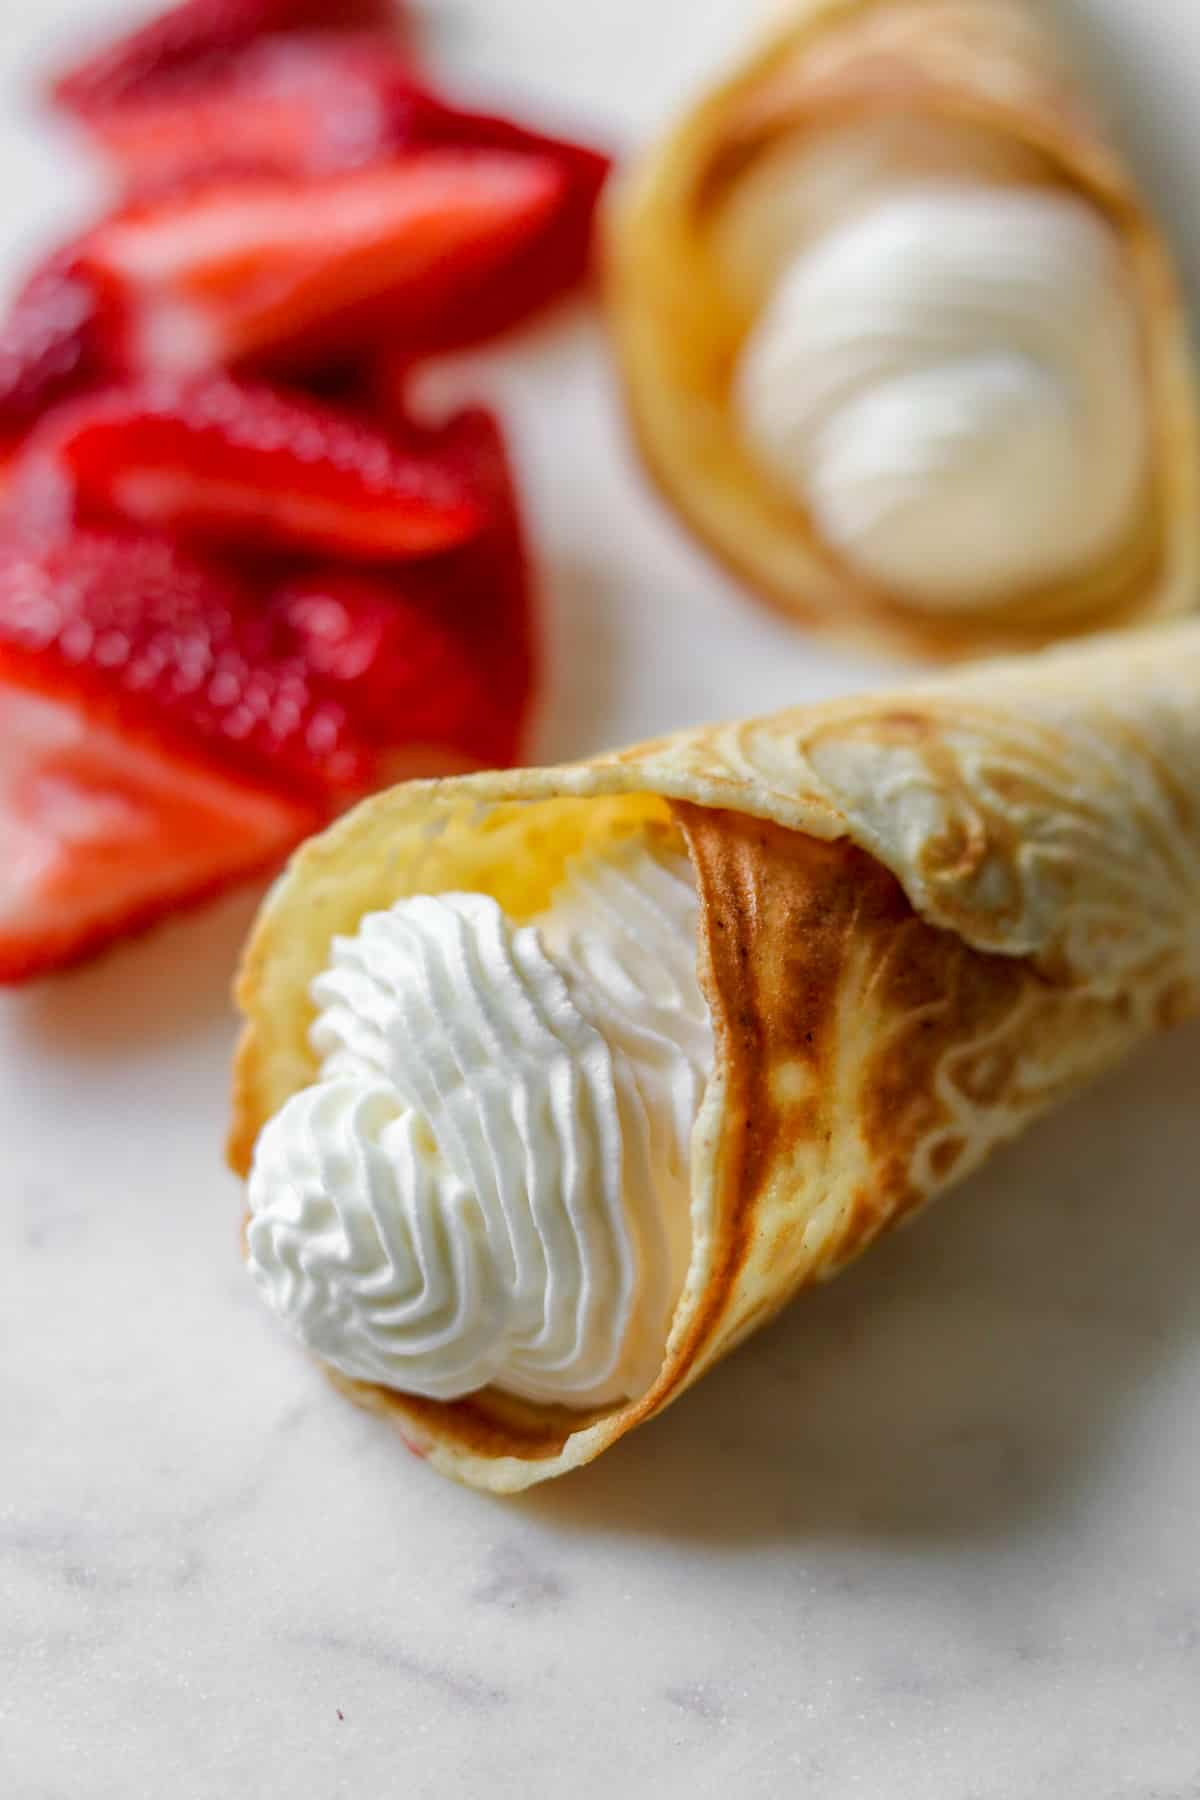 Close up of krumkake filled with whipped cream and strawberries on a plate.